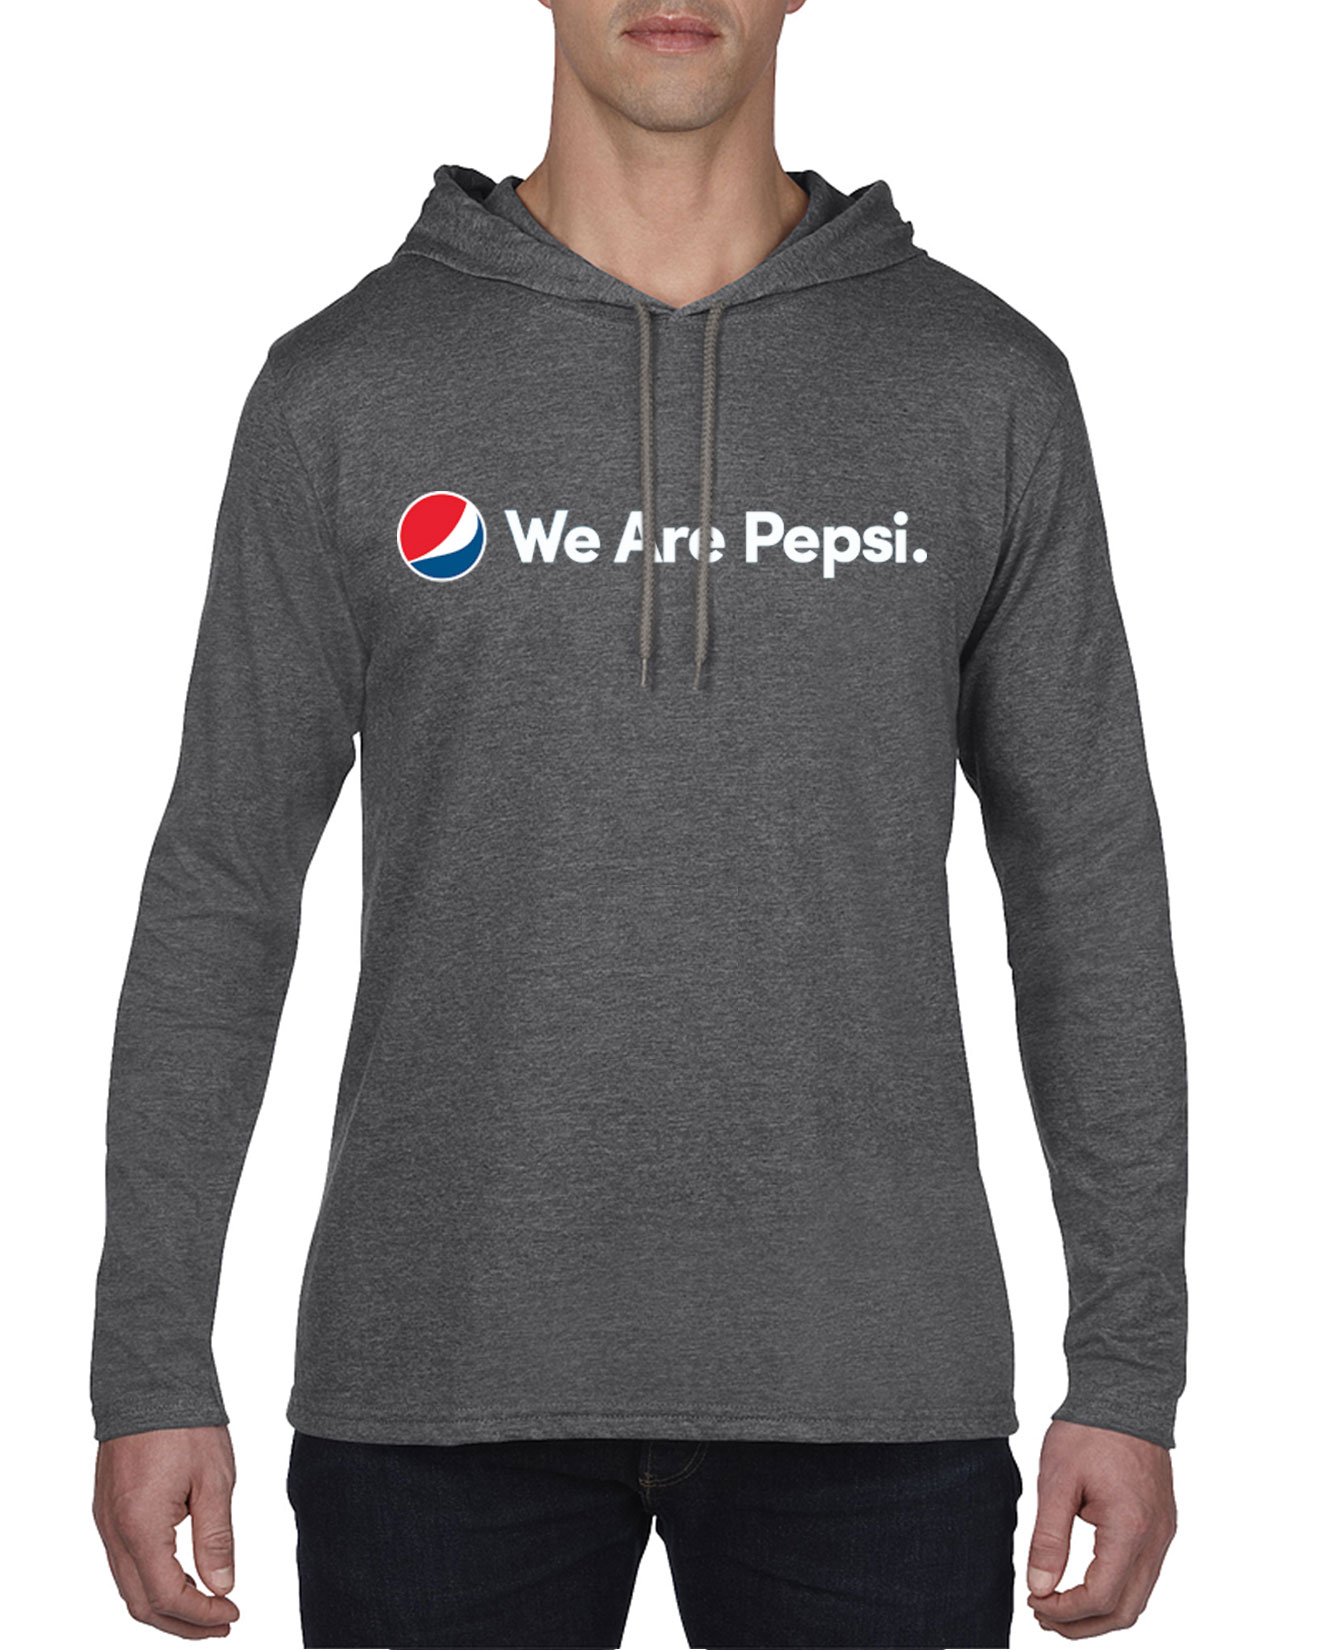 Men's Lightweight Hooded Long Sleeve Tshirt - We Are Pepsi